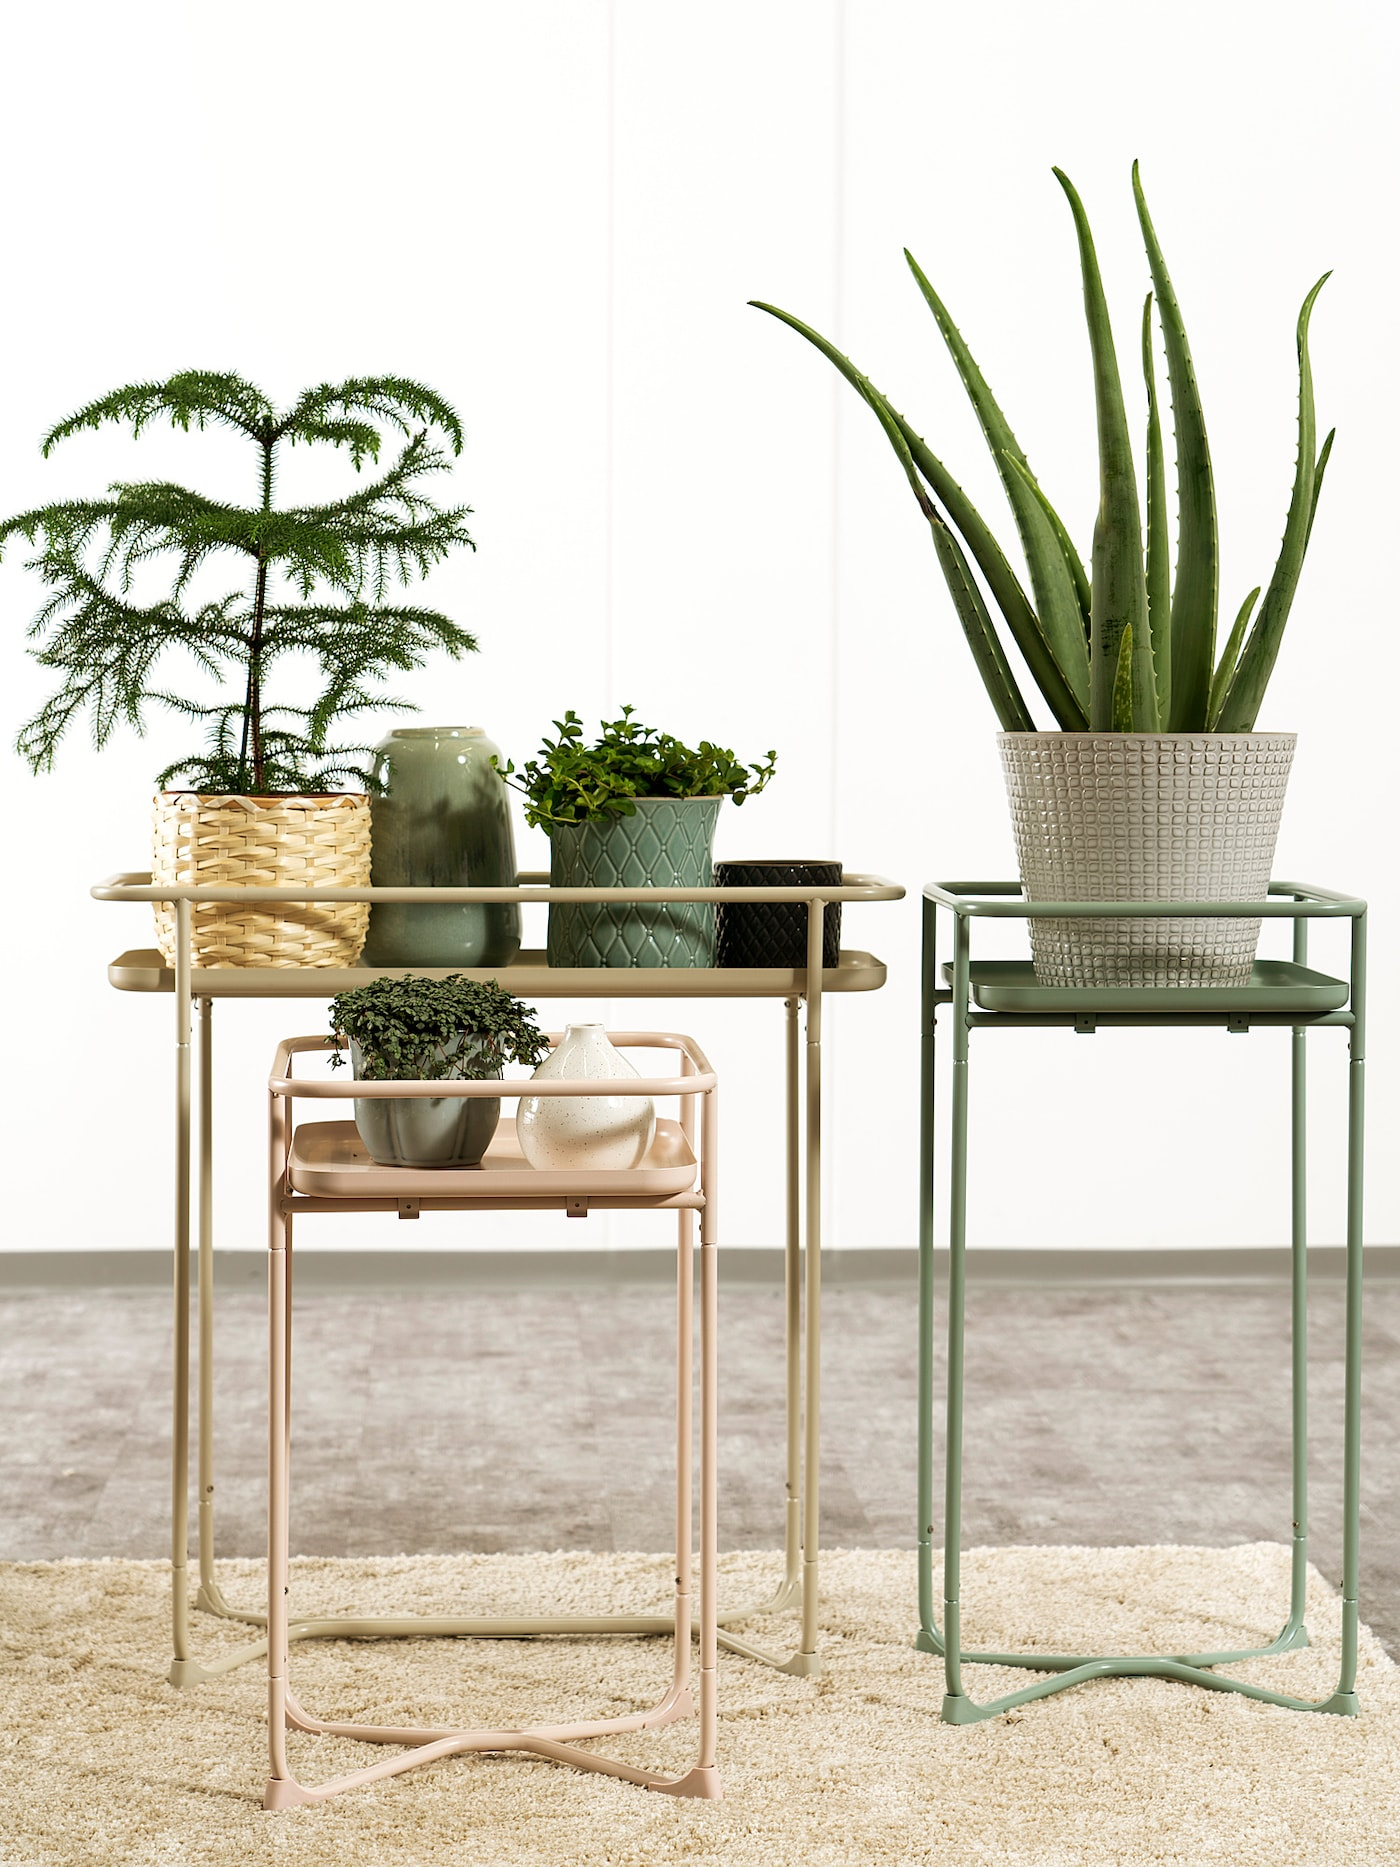 Outdoor plant stands from IKEA